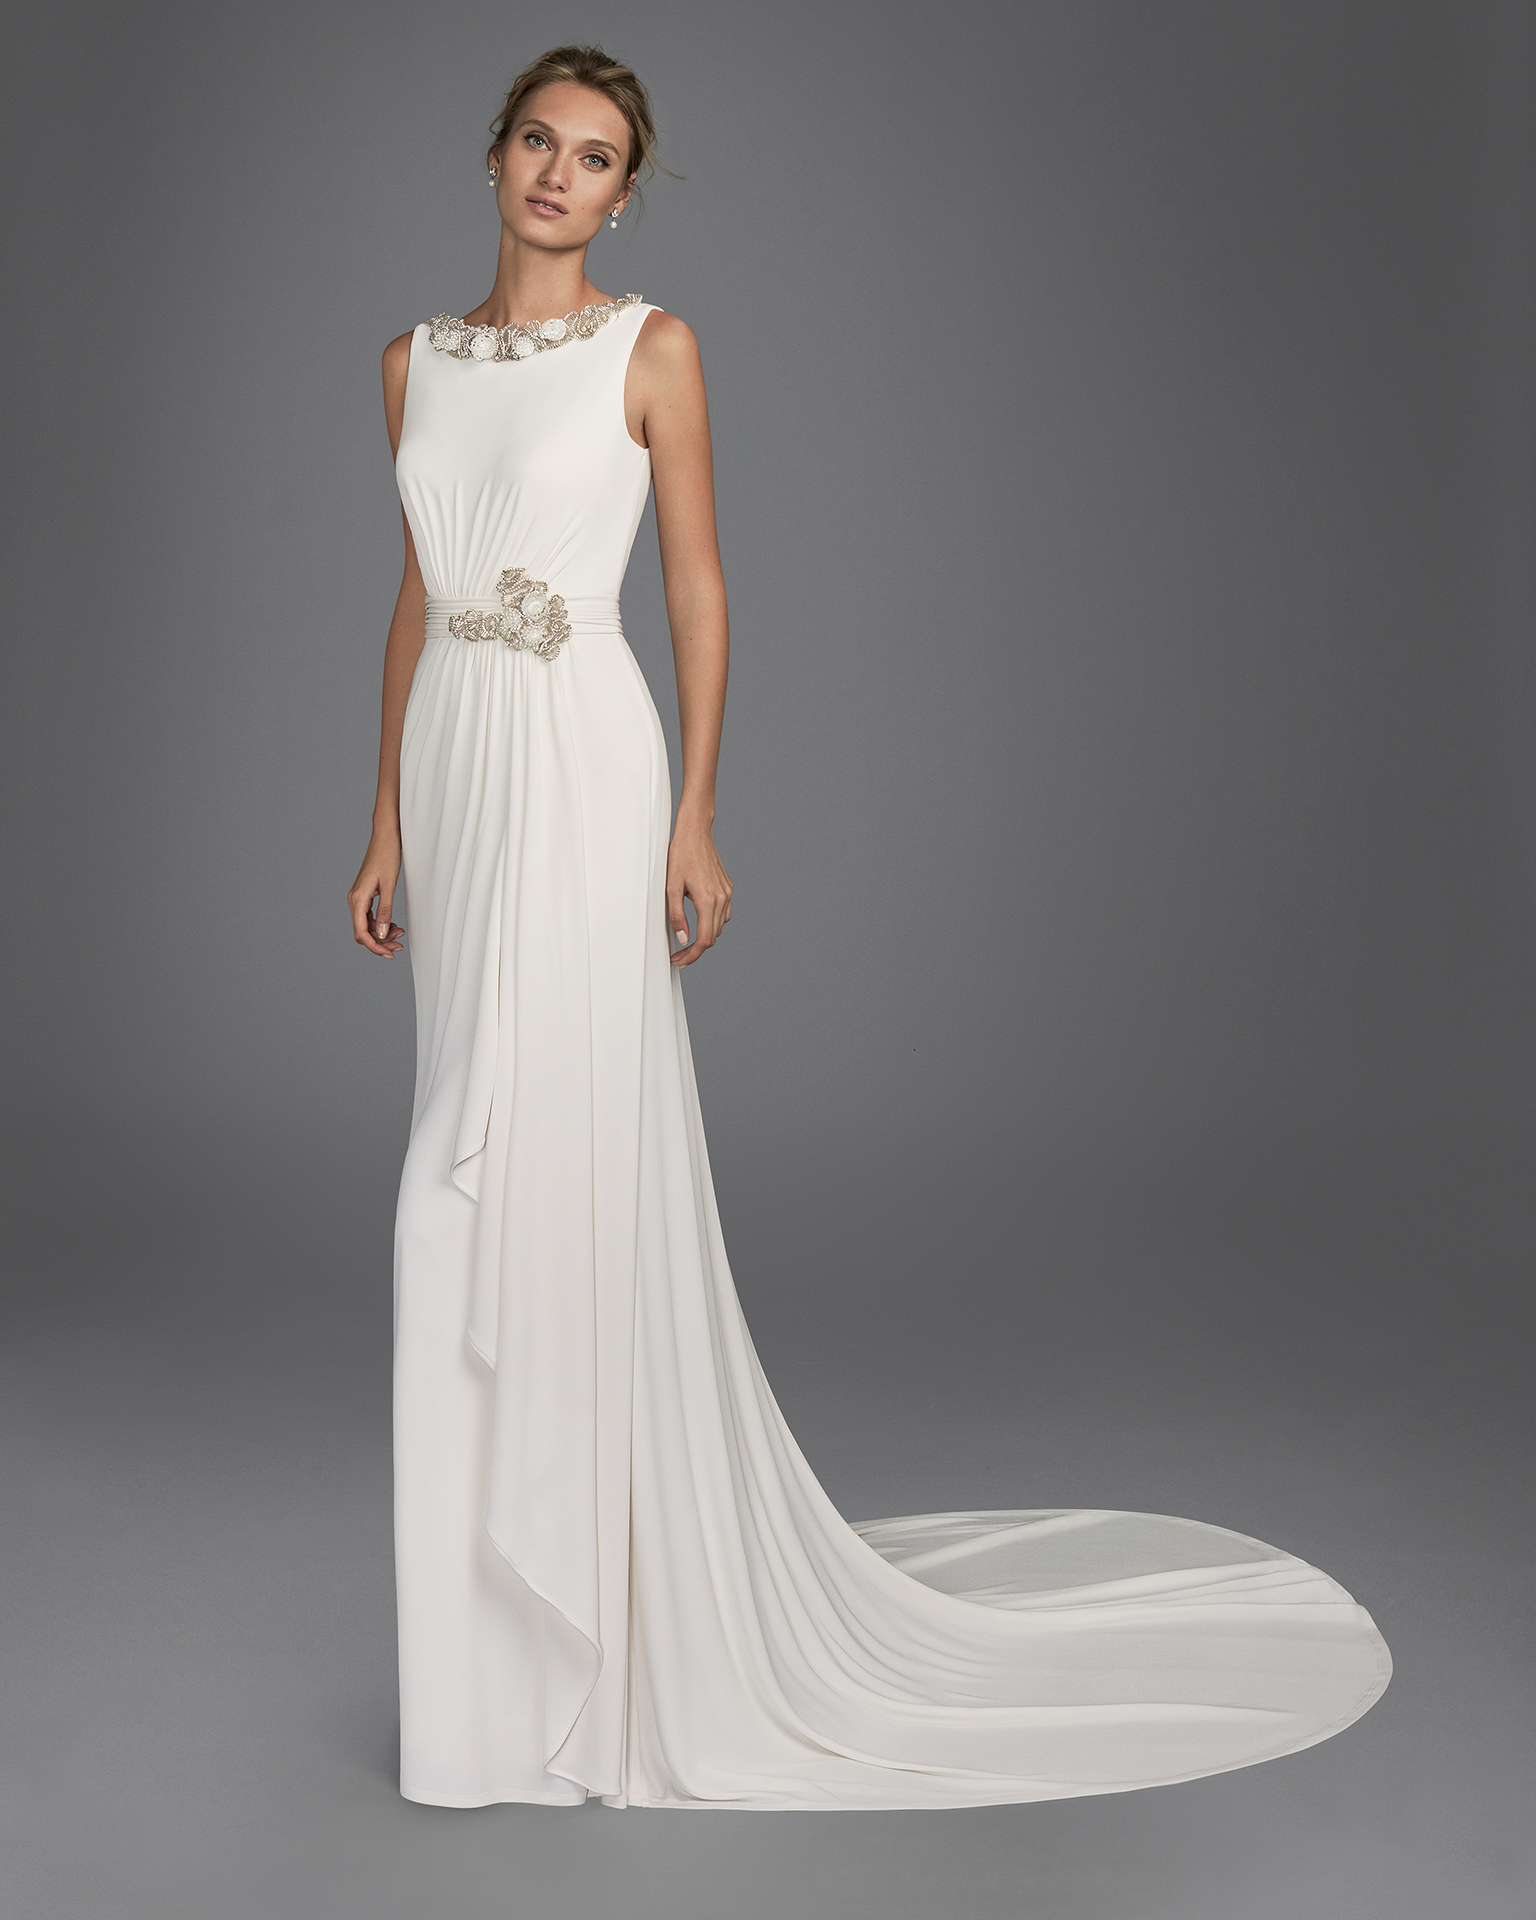 Mermaid-style stretch crepe wedding dress with low back and beadwork appliqués.